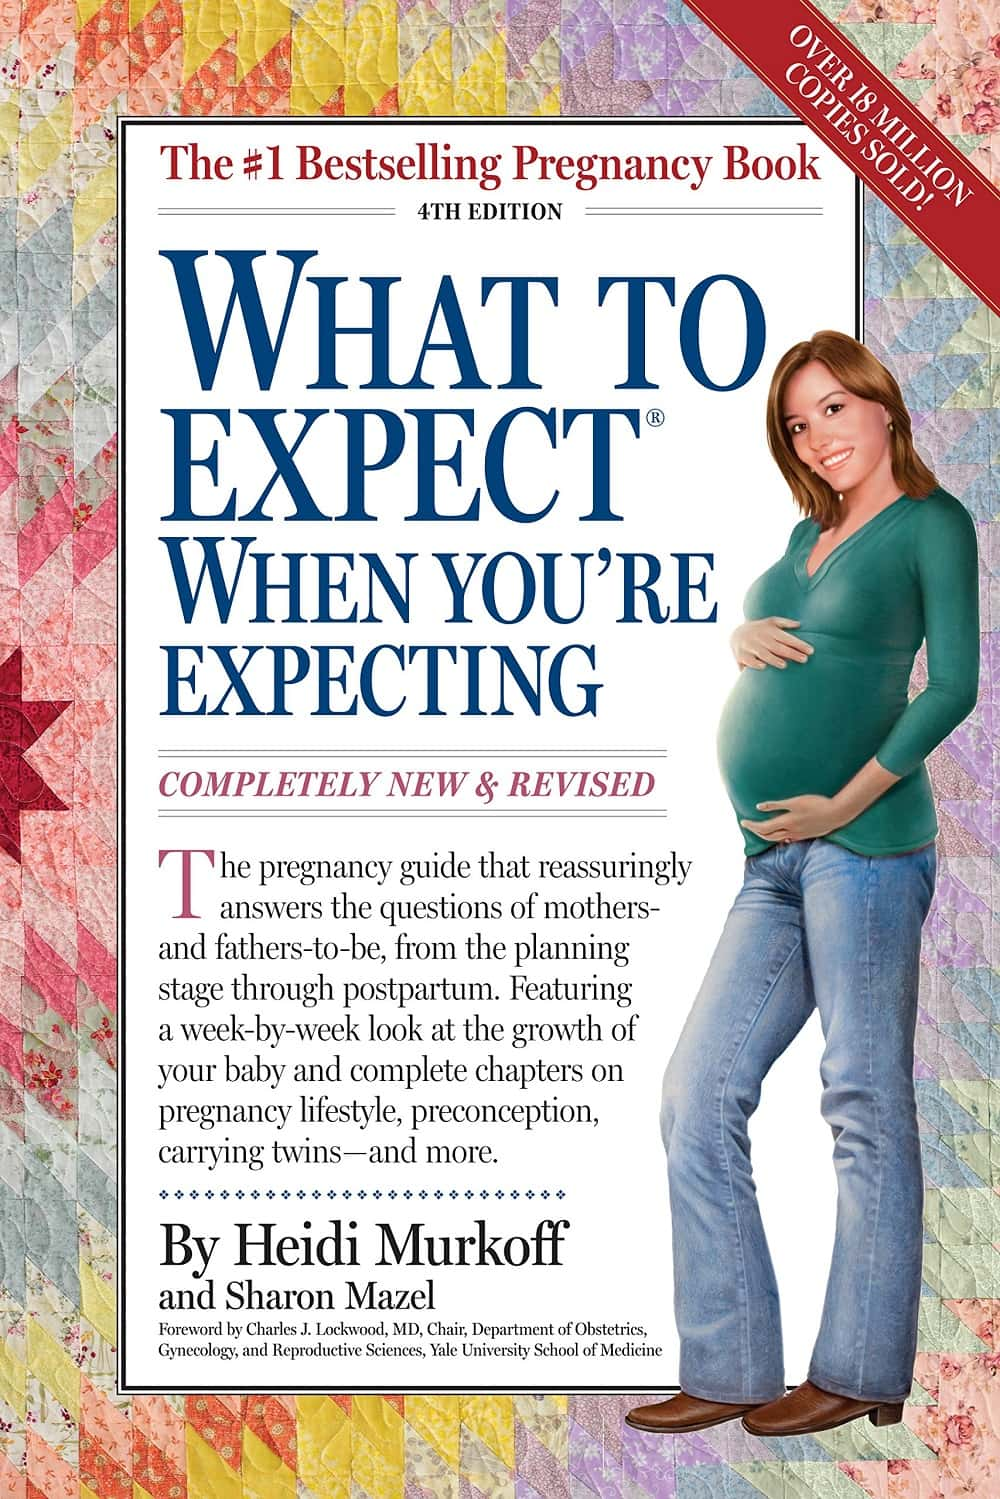 What to Expect When Youre Expecting Completely New and Revised 4th Edition